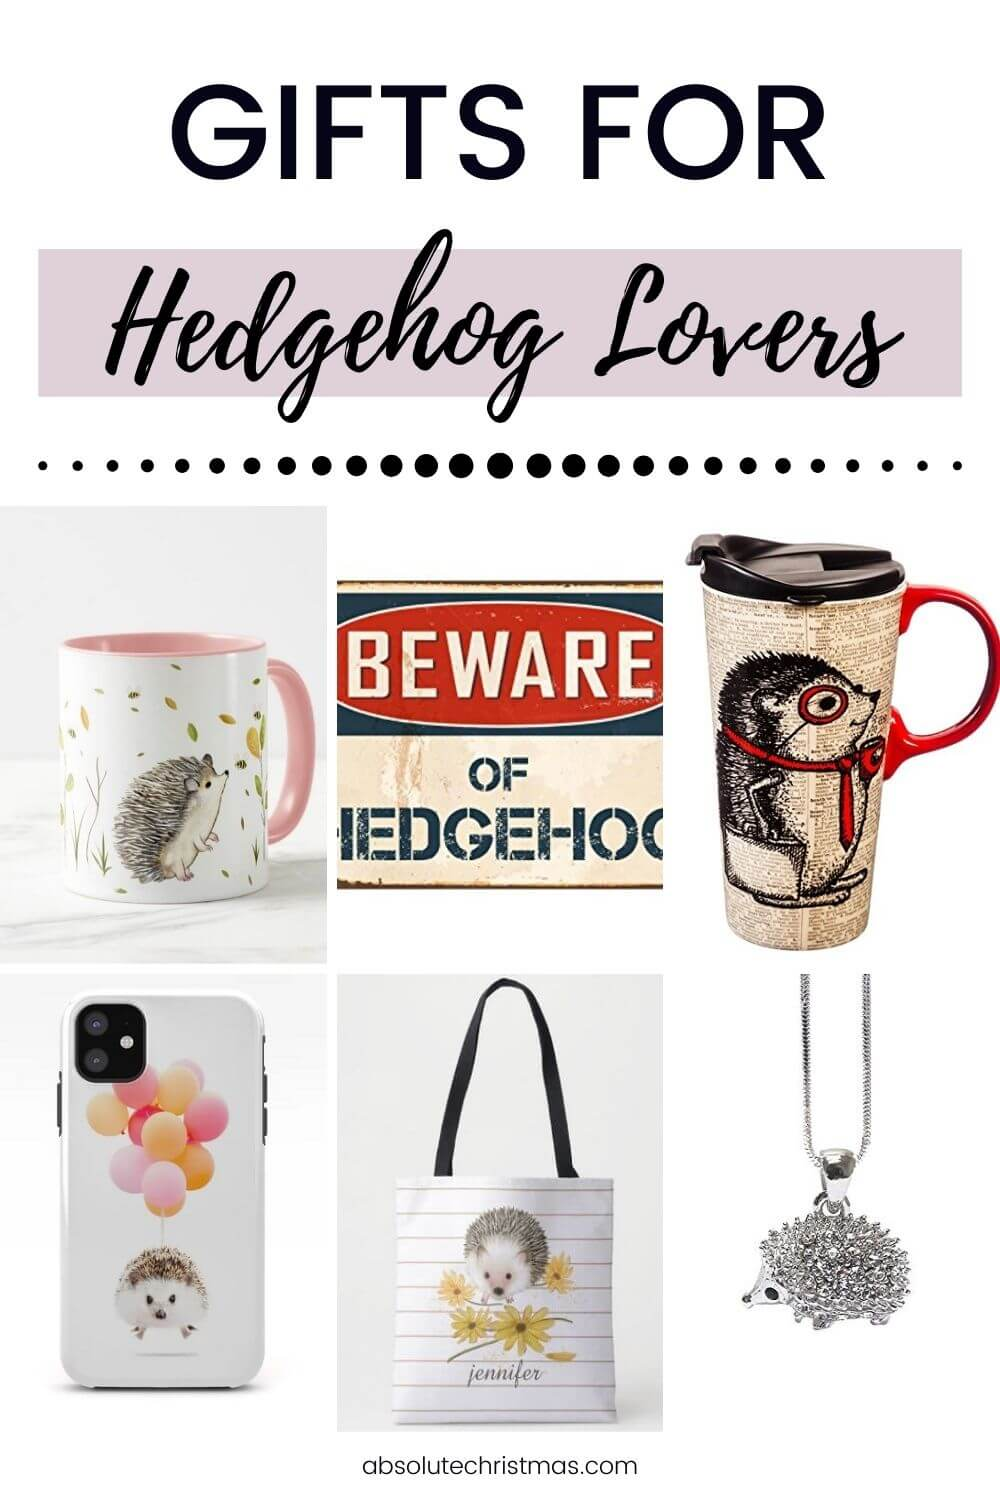 Best Gifts for Hedgehog Lovers - Cute Hedgie Lovers Gift Ideas